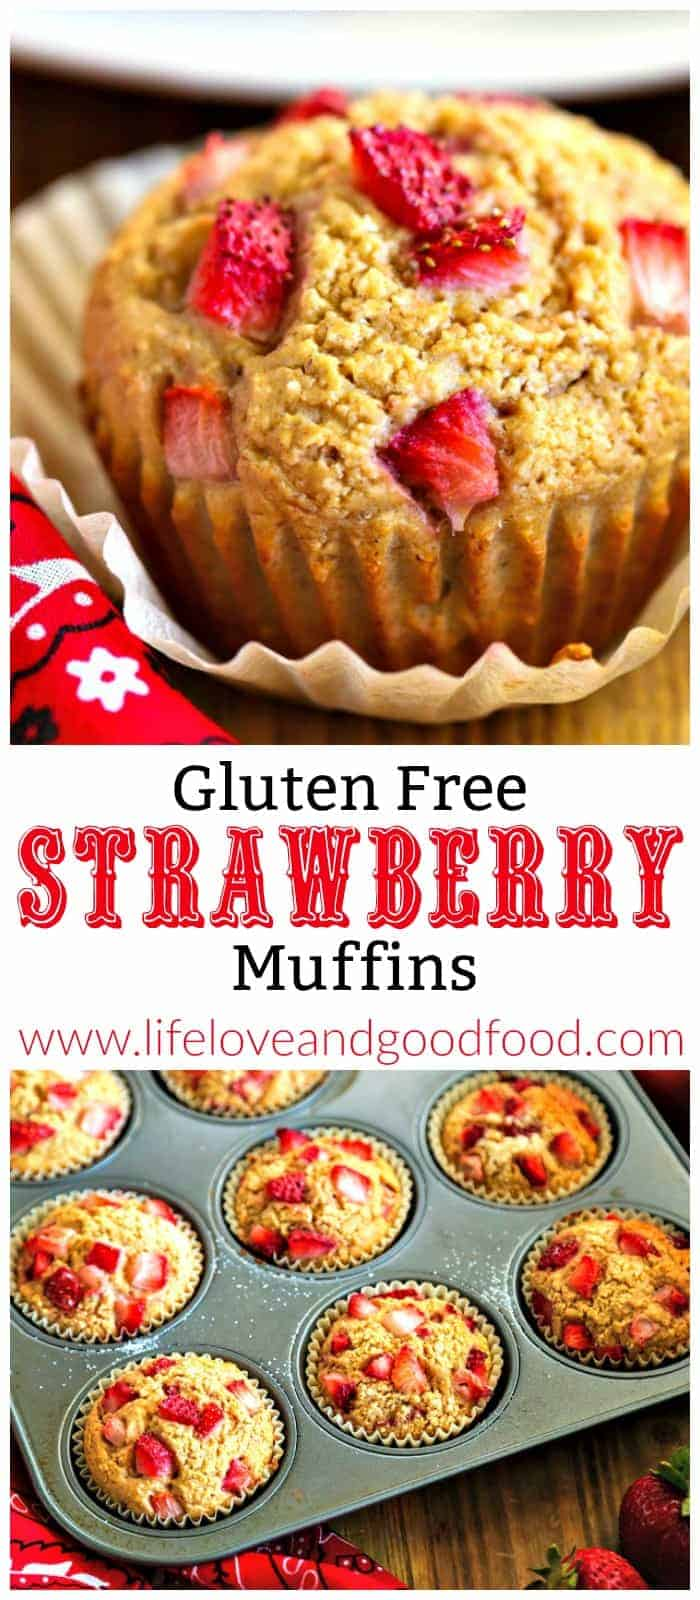 """Strawberries aren't just for dessert, they're also delicious in these breakfast Strawberry Muffins made with oat """"flour"""" and low-fat yogurt. #strawberrymuffins #glutenfree"""